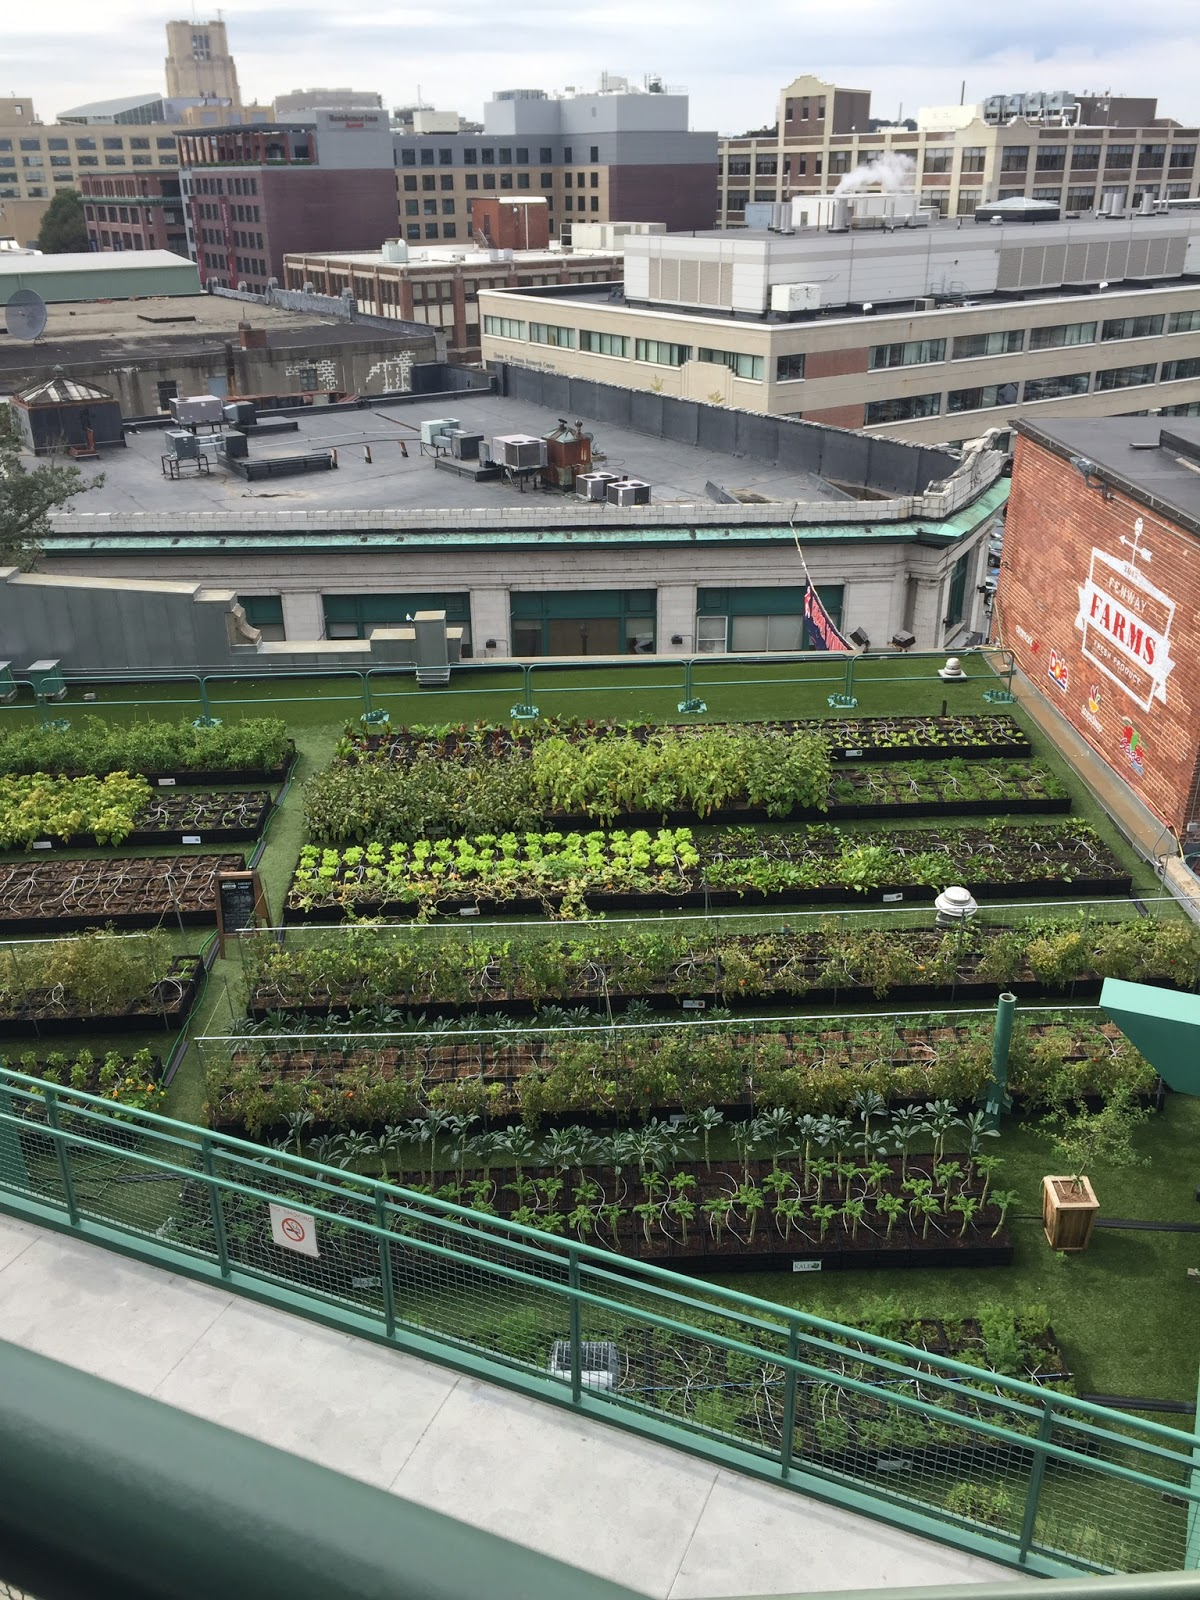 But What We Loved Was The Garden! This Rooftop Green Space Was Recently  Planted In The Spring Of 2015 And Transformed An Old Rubber Roof Into A  Fruitful ...